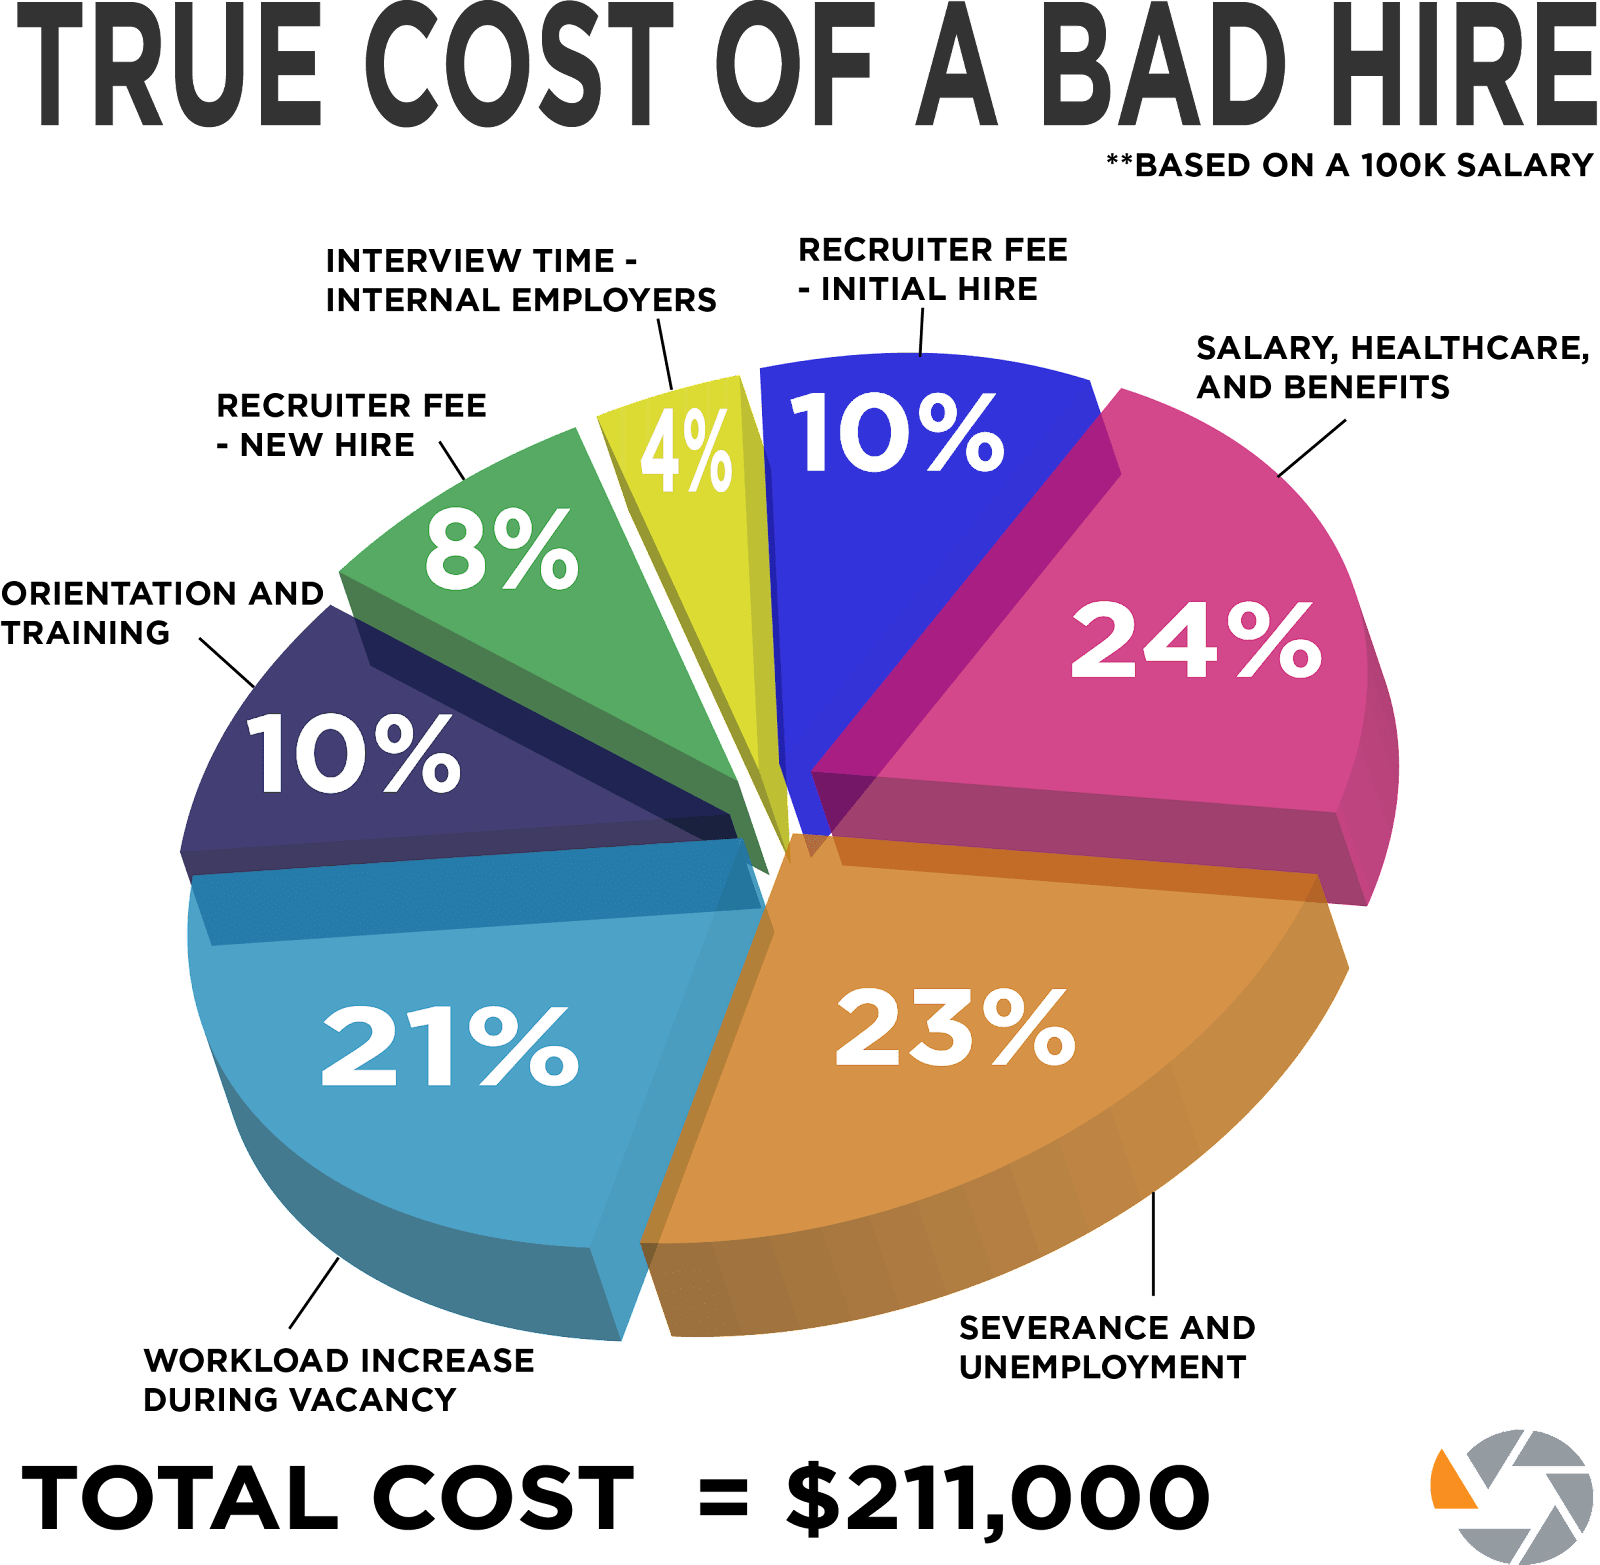 True cost of a bad hire pie chart